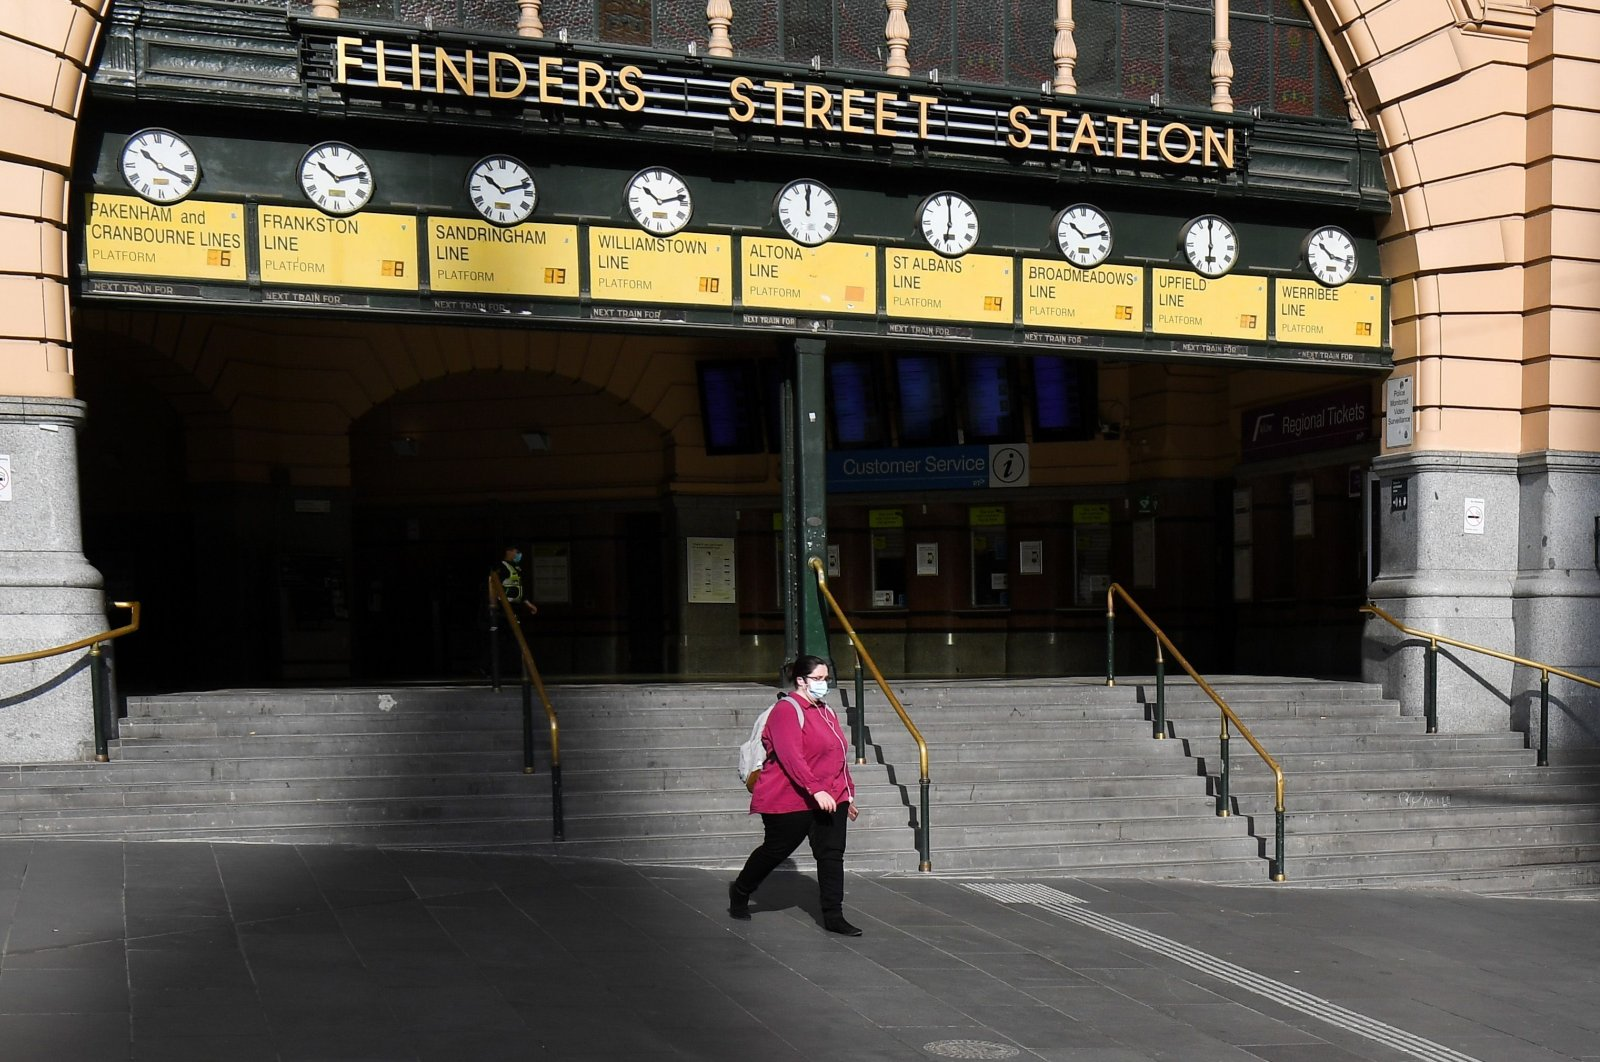 A woman walks out of a near-deserted Flinders Street Station in Melbourne on Aug. 3, 2020, after the state announced new restrictions as the city battles fresh outbreaks of the coronavirus. (AFP Photo)